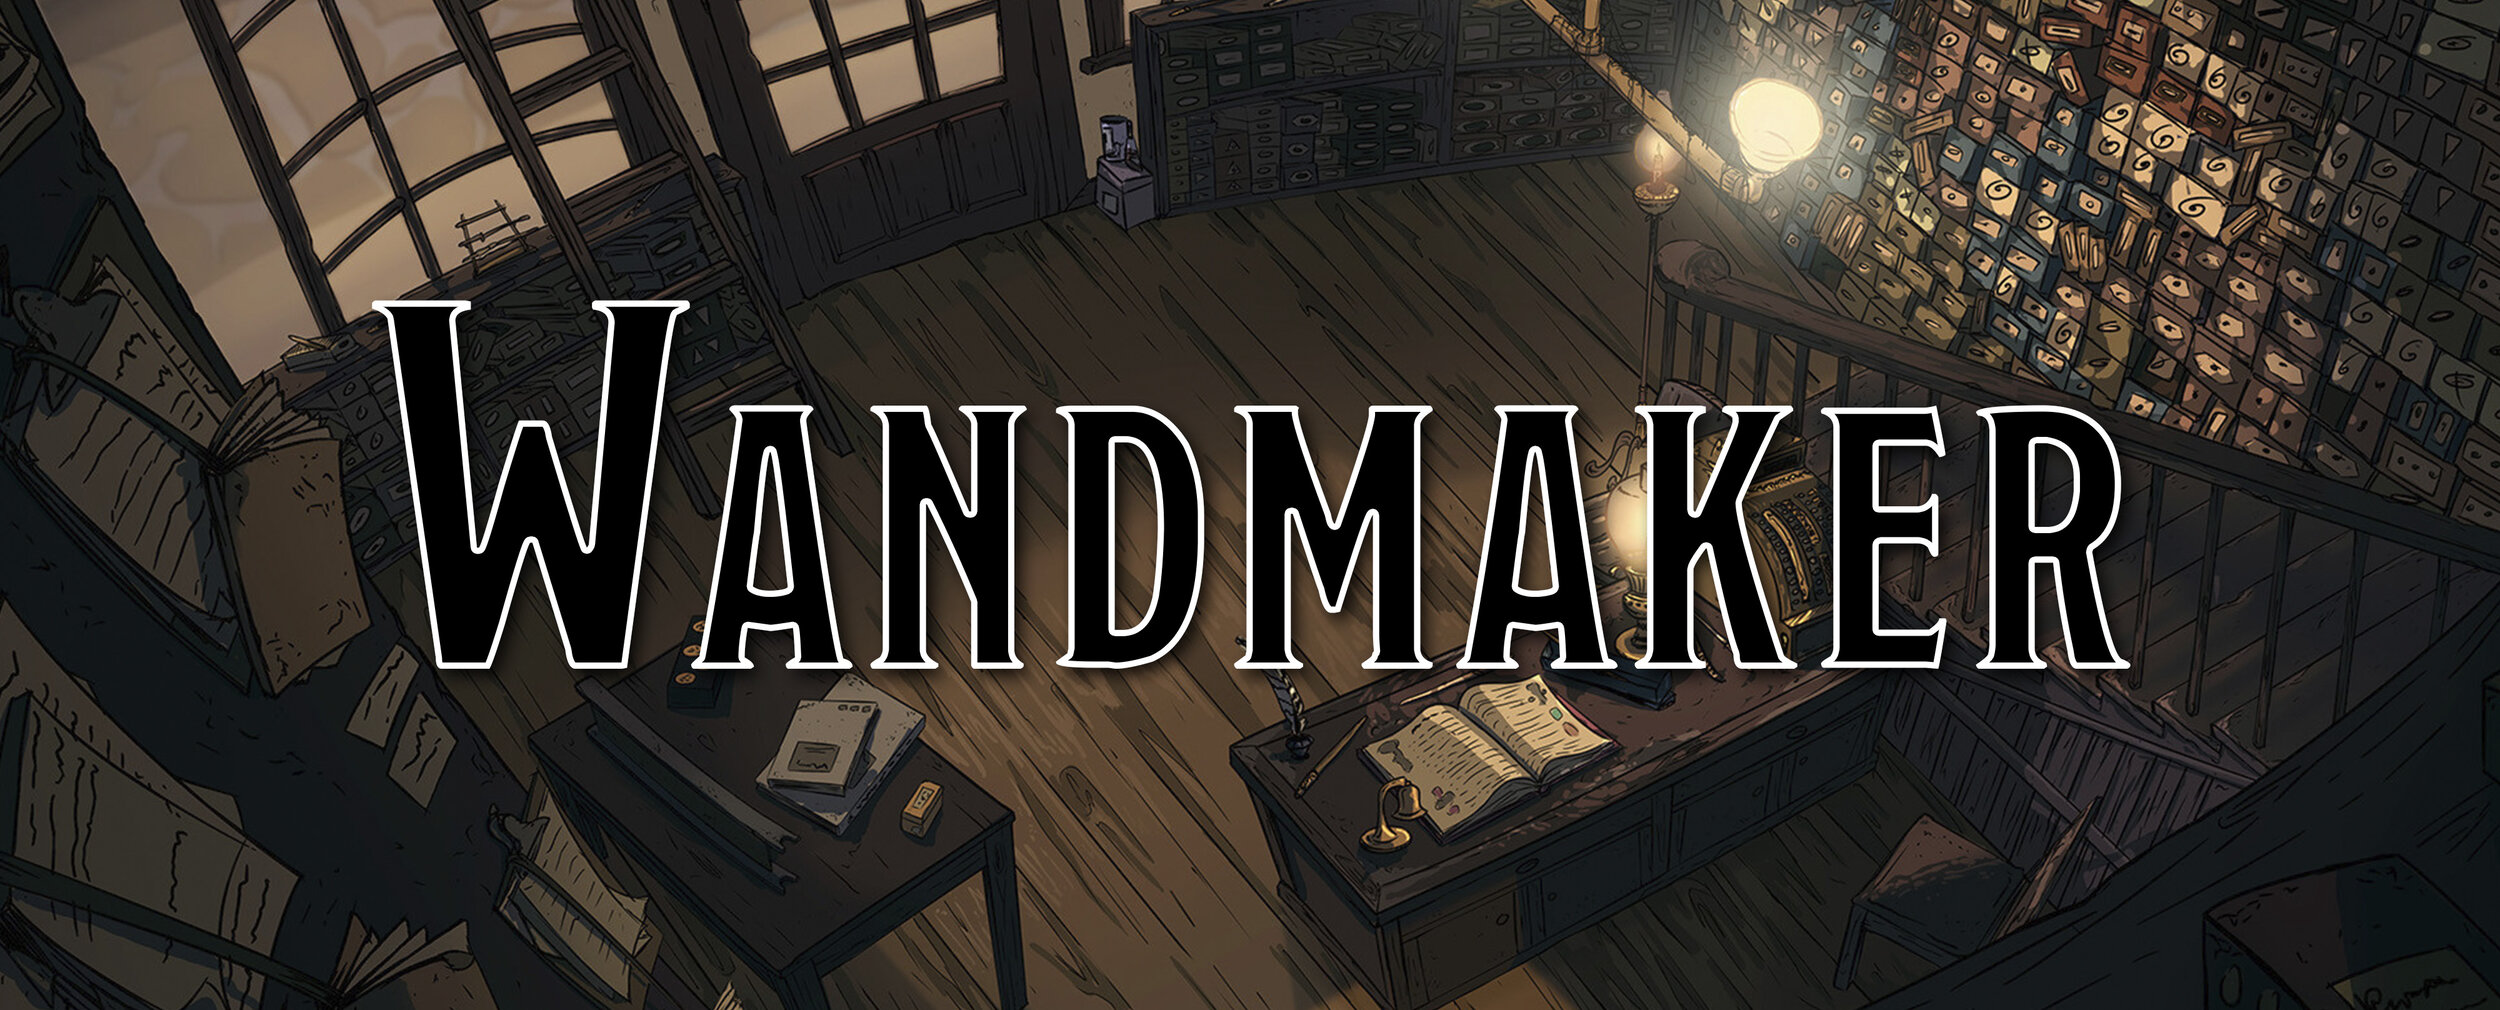 More Tools For 5e Wandmaker S Tools Dump Stat Adventures At 20th level, you can draw on your inner reserve of mystical power while entreating your patron to regain expended spell slots. more tools for 5e wandmaker s tools dump stat adventures